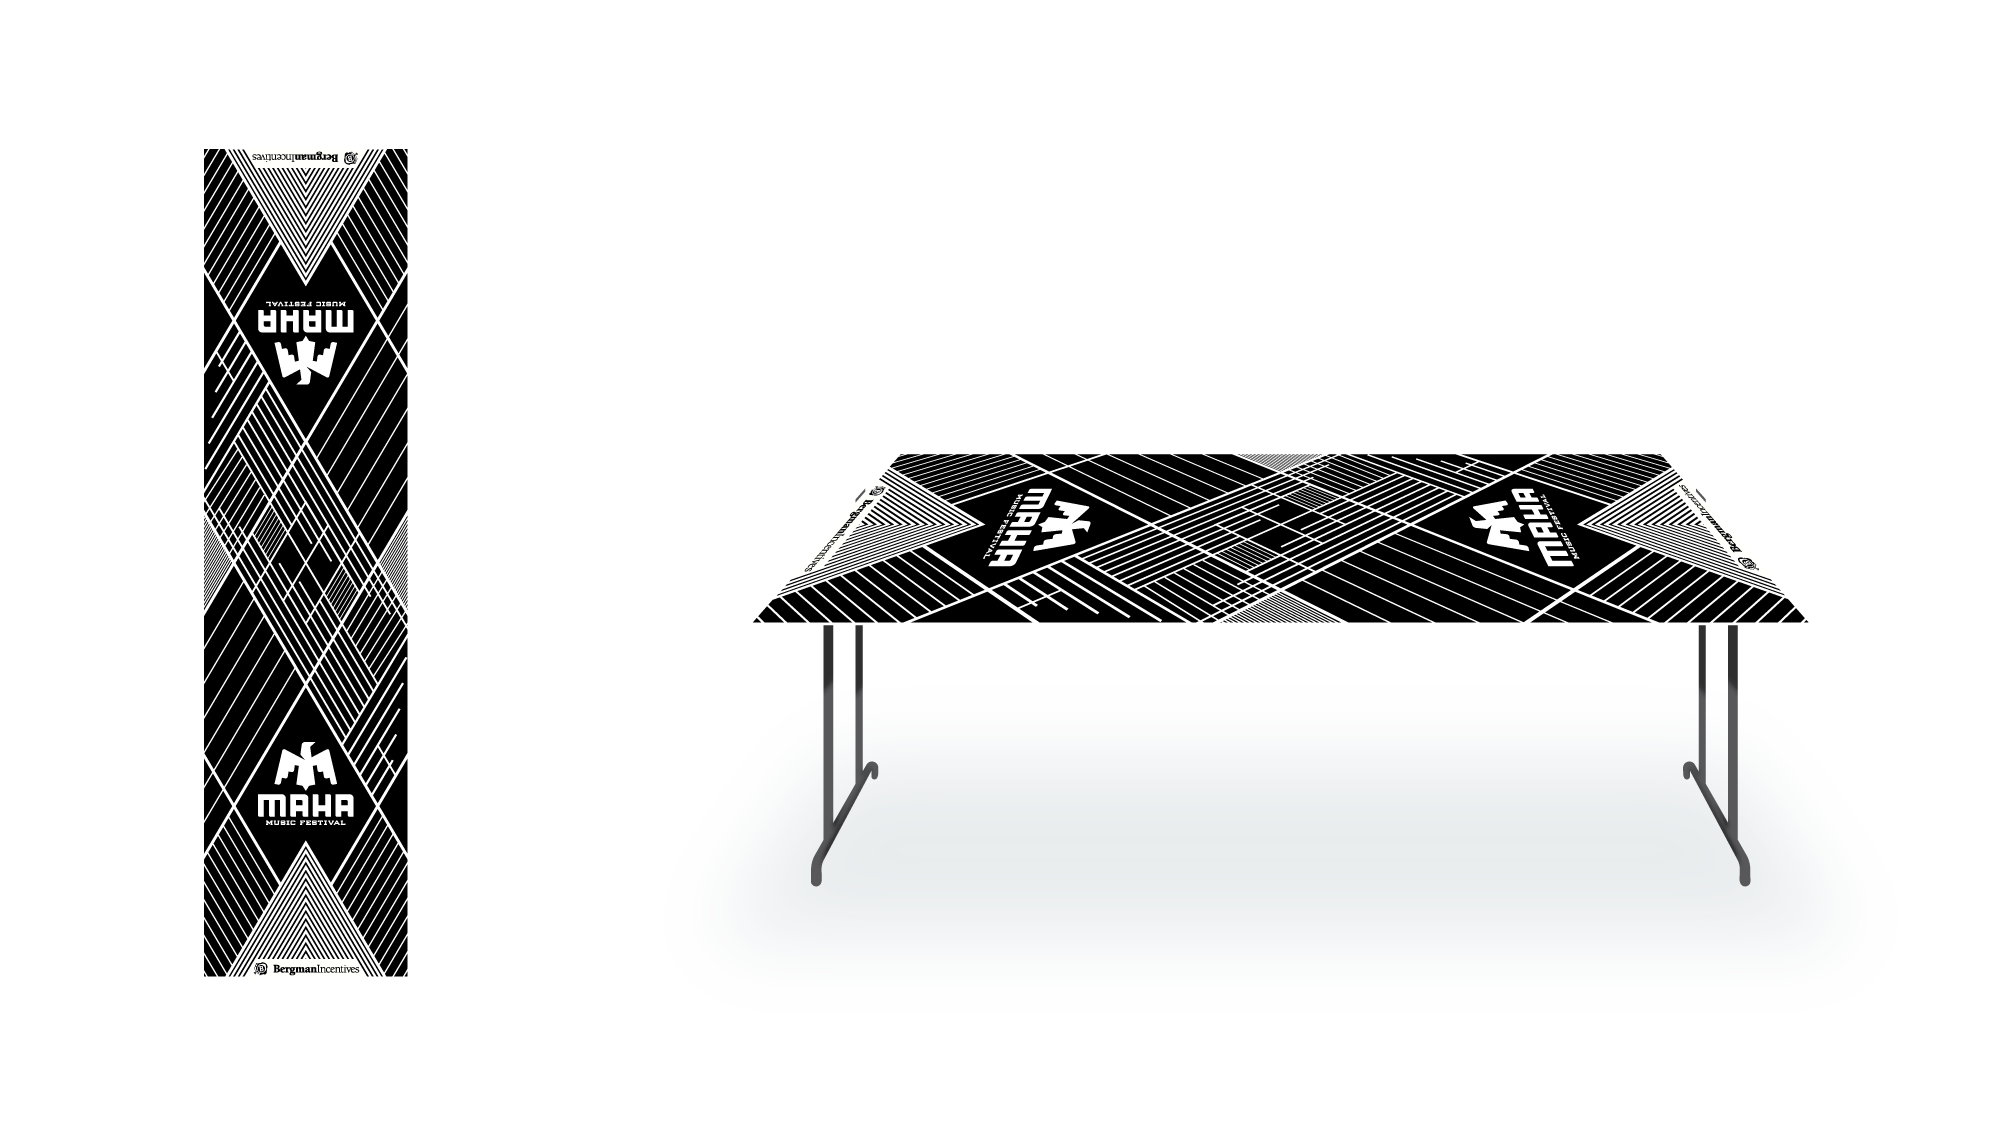 Pong table design for promotional products firm Bergman Incentives, to be displayed at Maha Music Festival